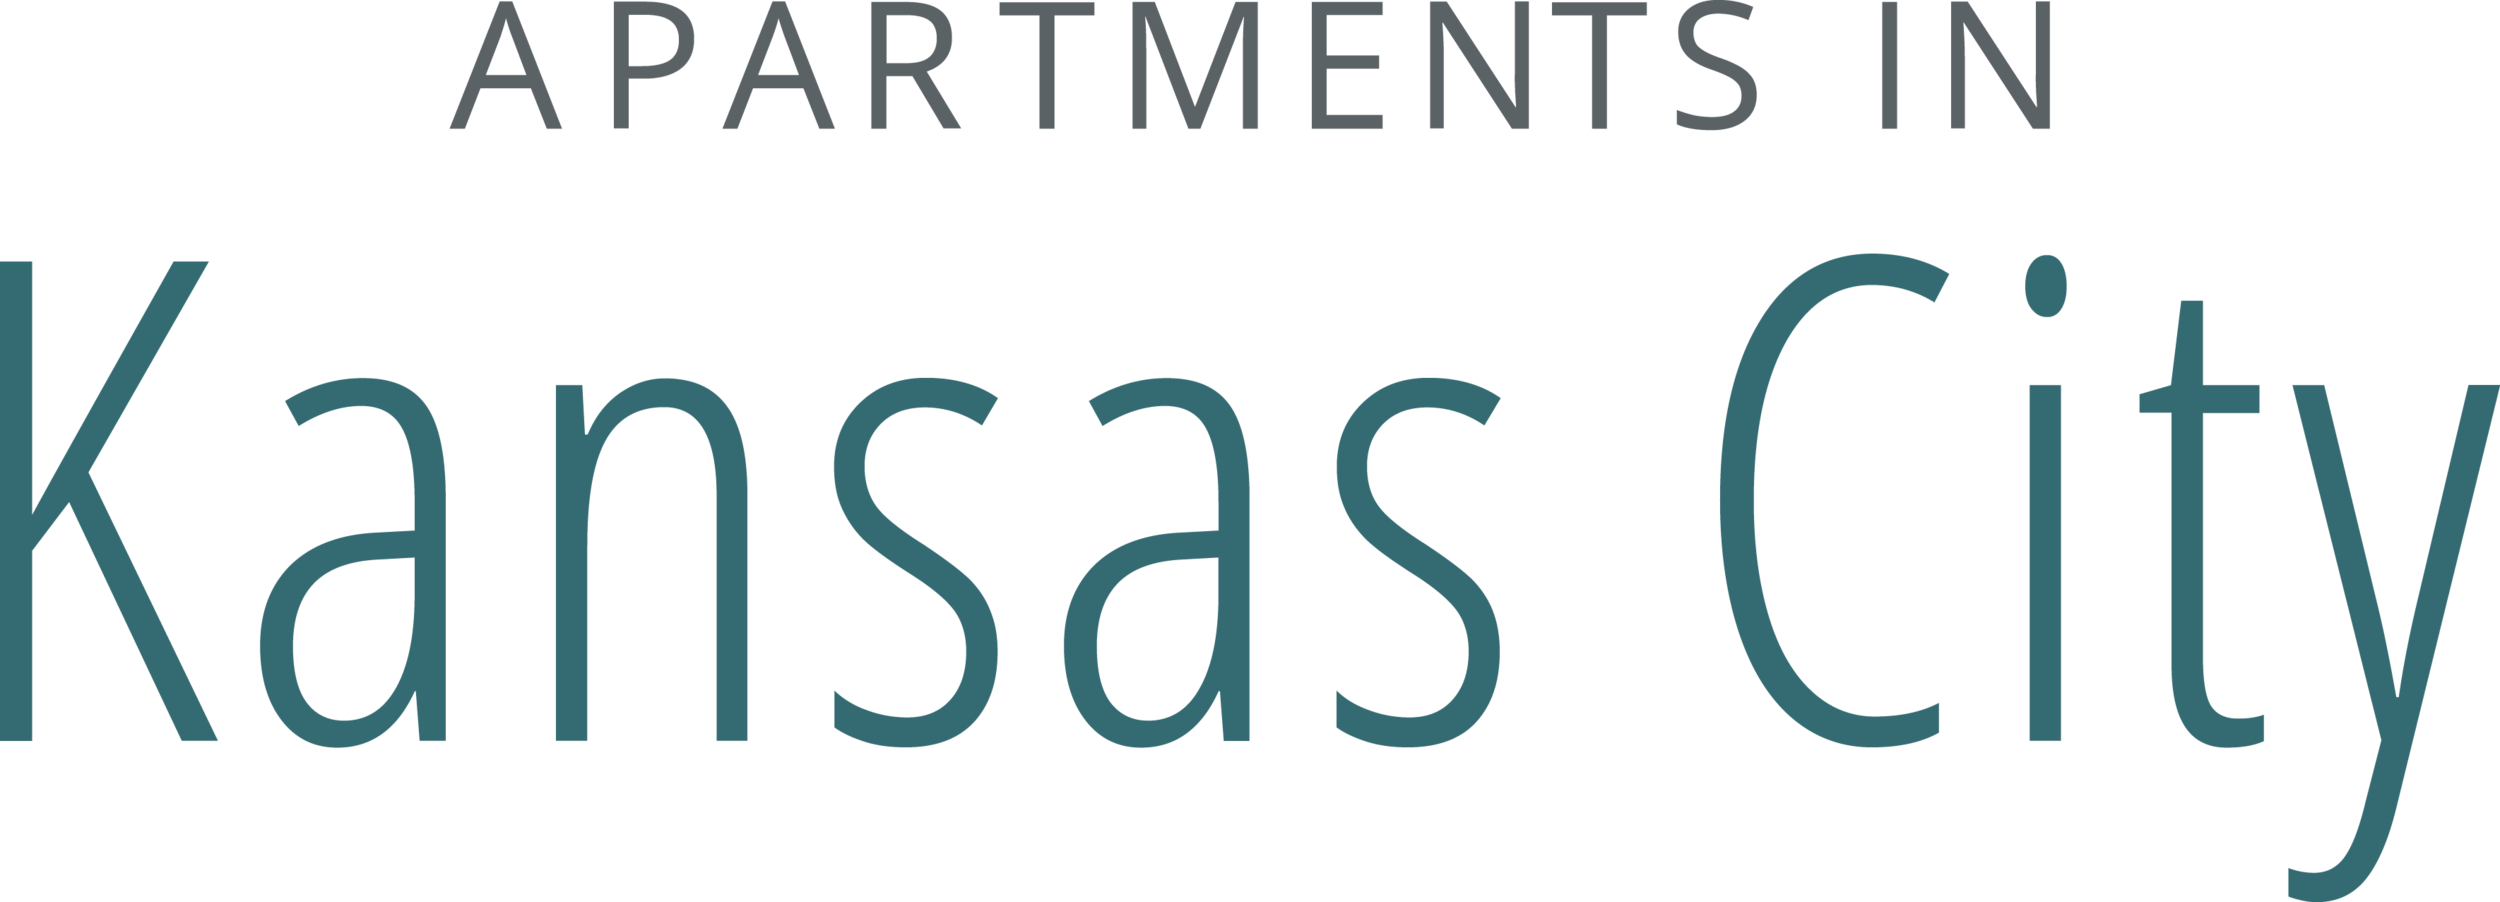 - Part of a branding suite representing apartment complexes within the greater Kansas City Area.- Created While Employed at 365 Connect